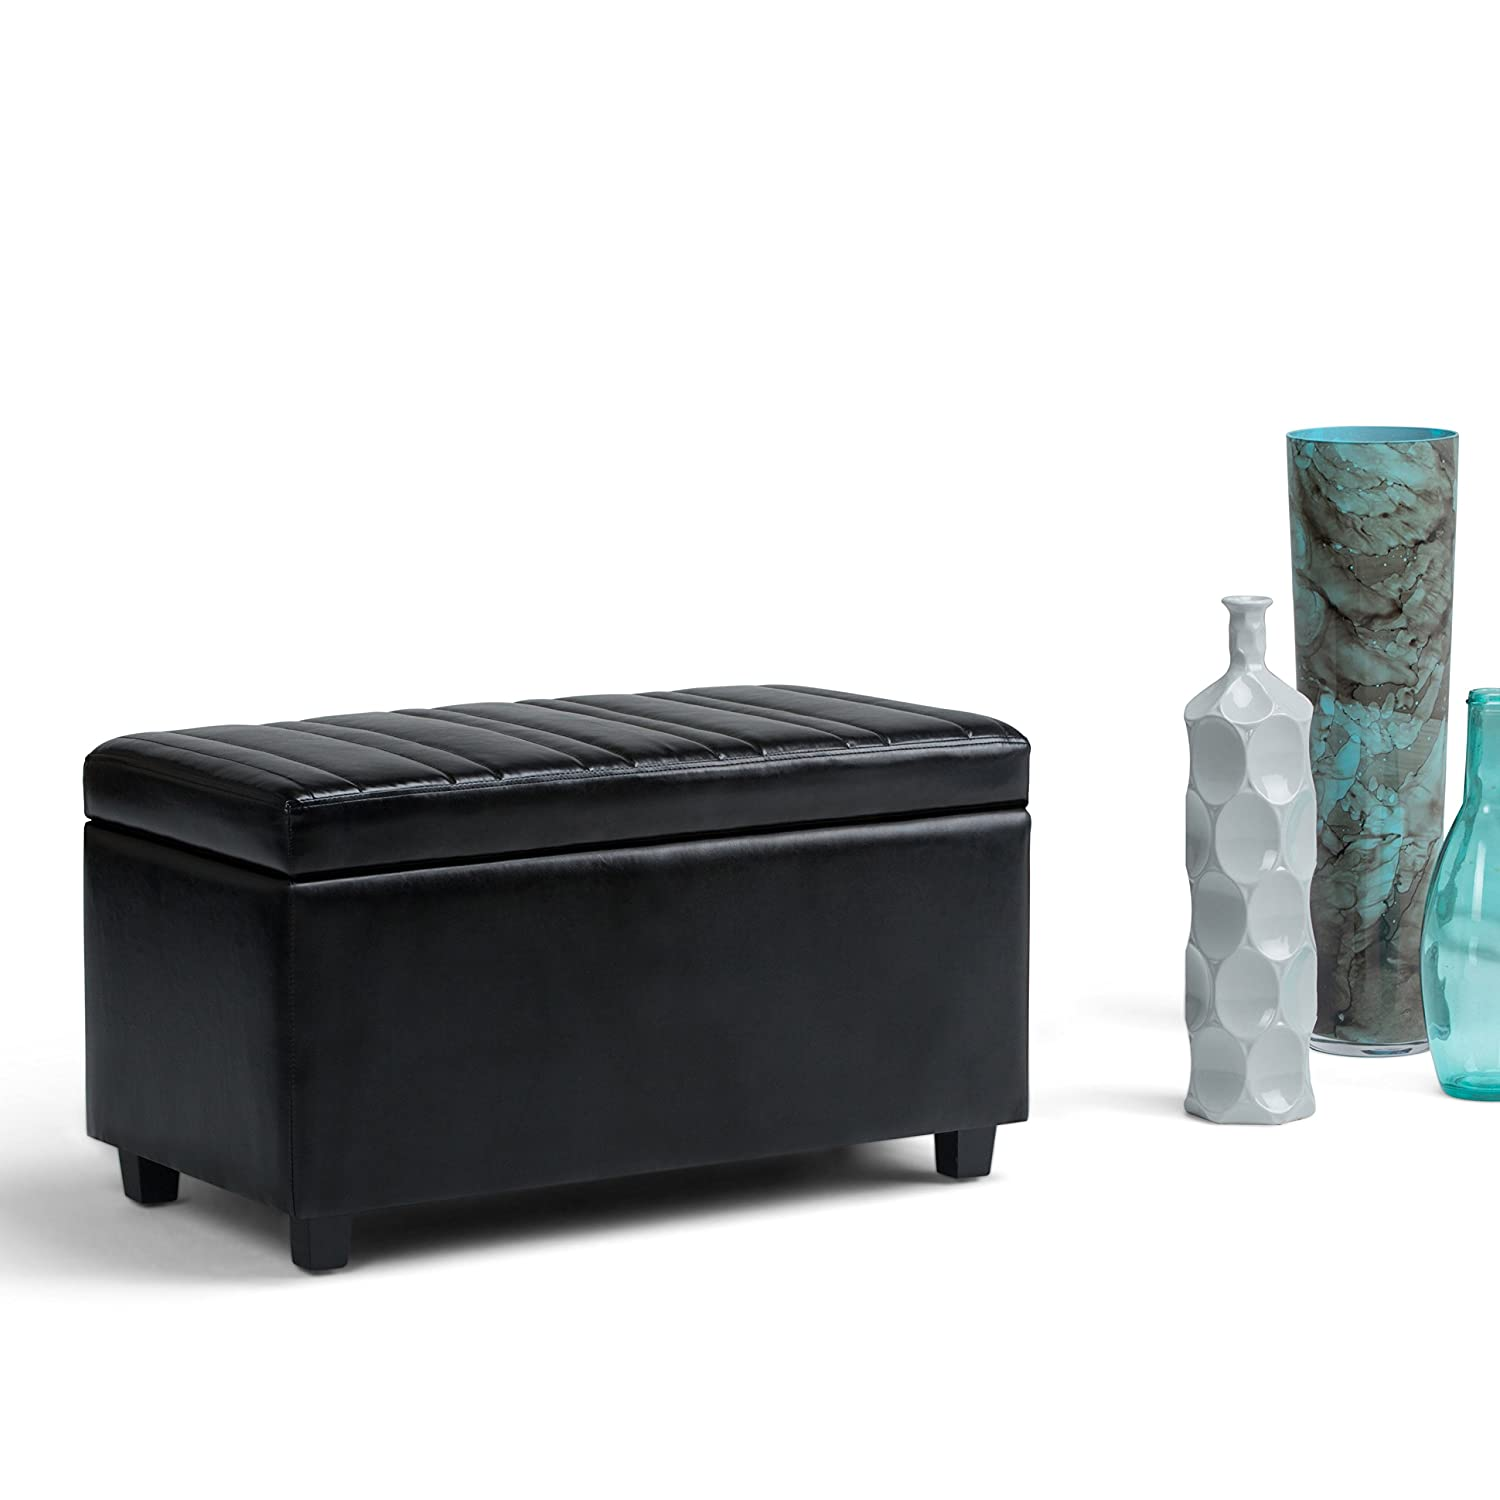 Simpli Home AXCOT-259-BL Darcy 34 inch Wide Contemporary Storage Ottoman in Midnight Black Faux Leather